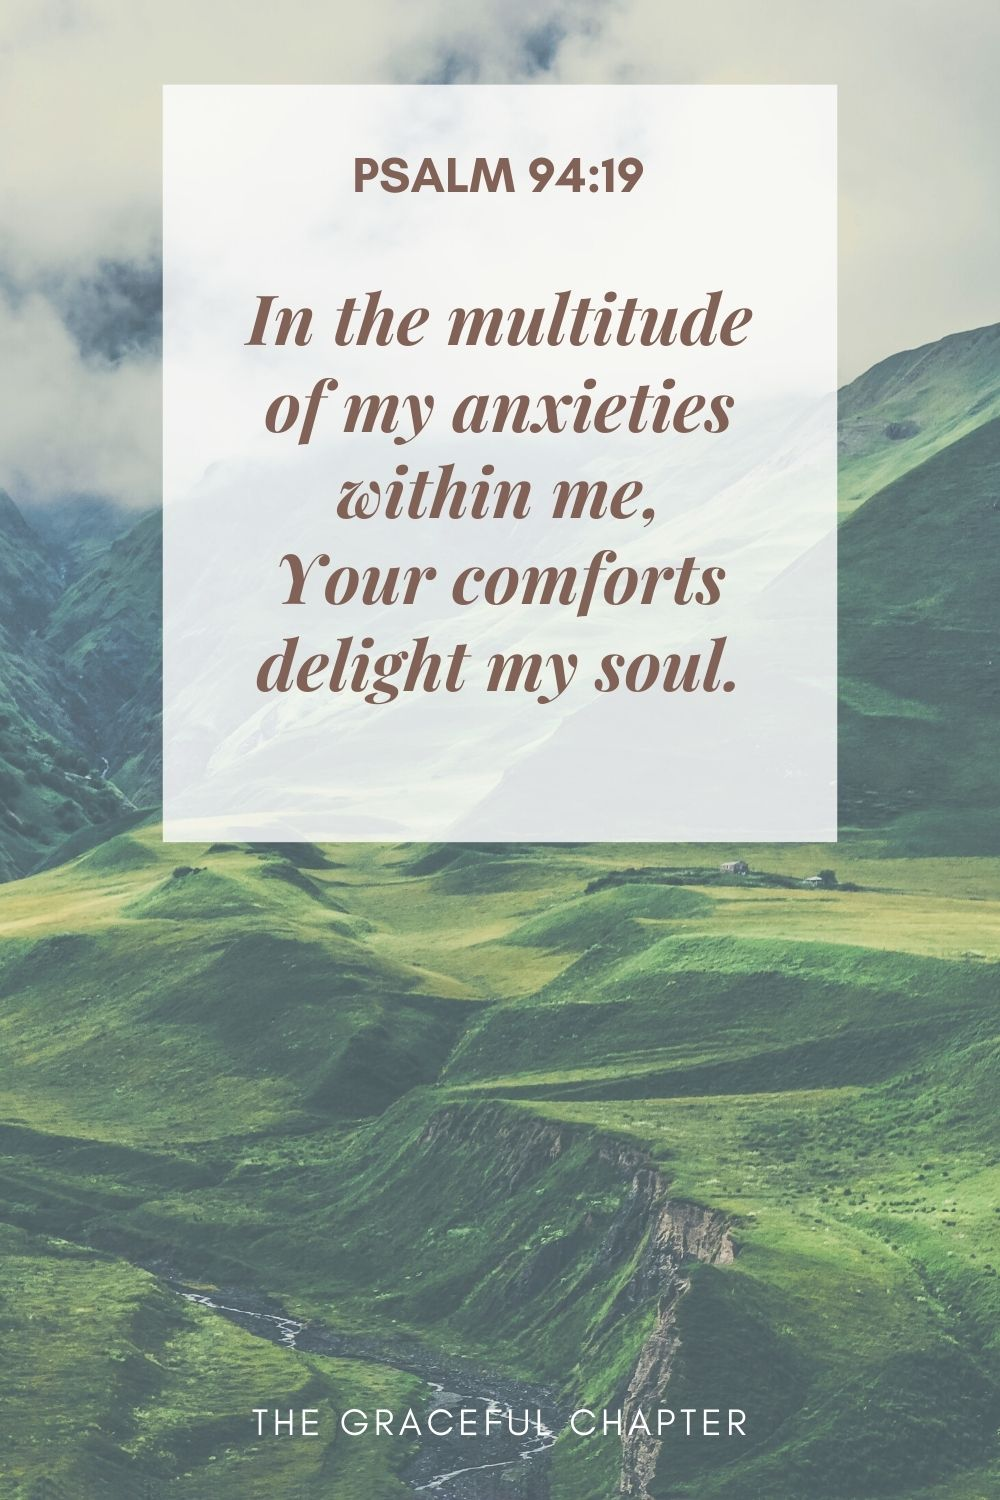 In the multitude of my anxieties within me, Your comforts delight my soul. Psalm 94:19